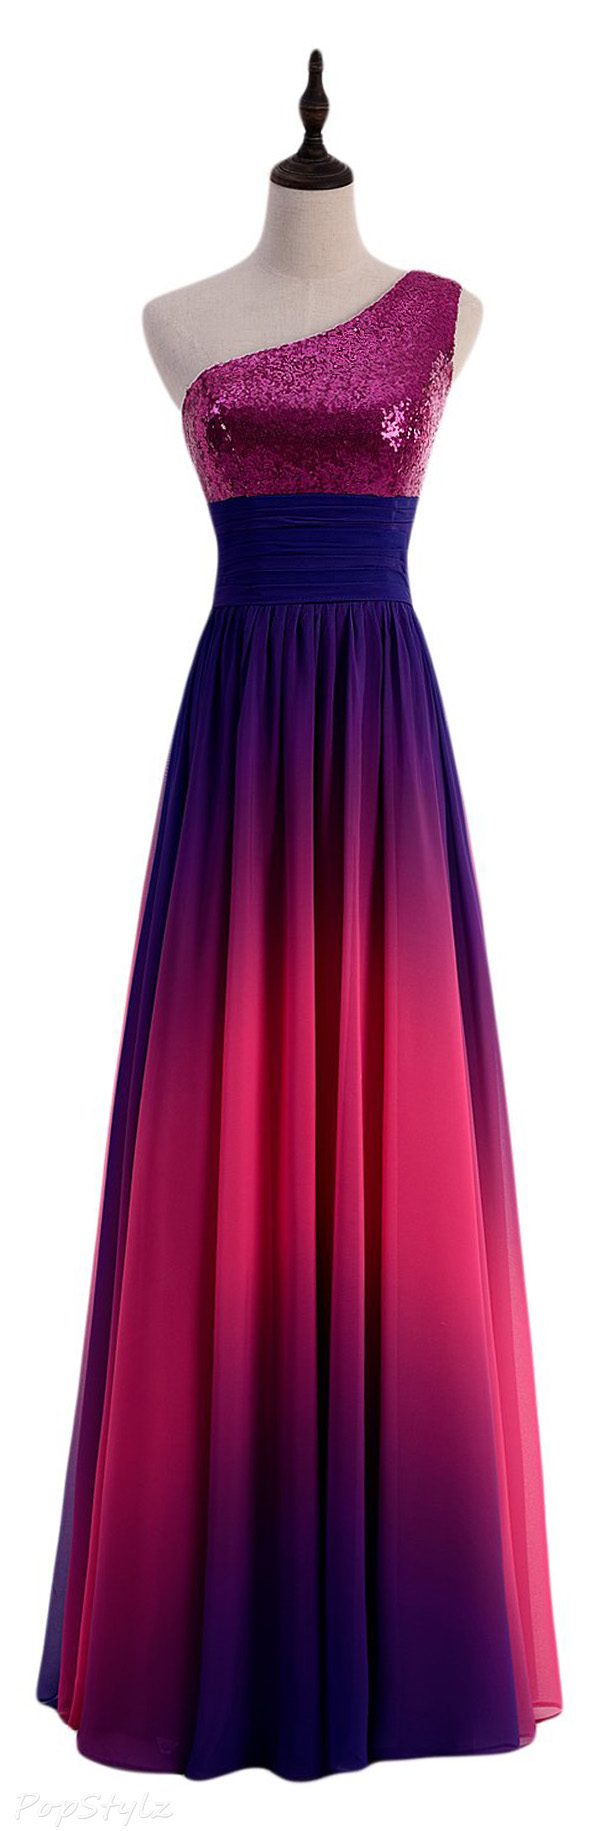 Sunvary Sequins & Chiffon Gradient Evening Gown